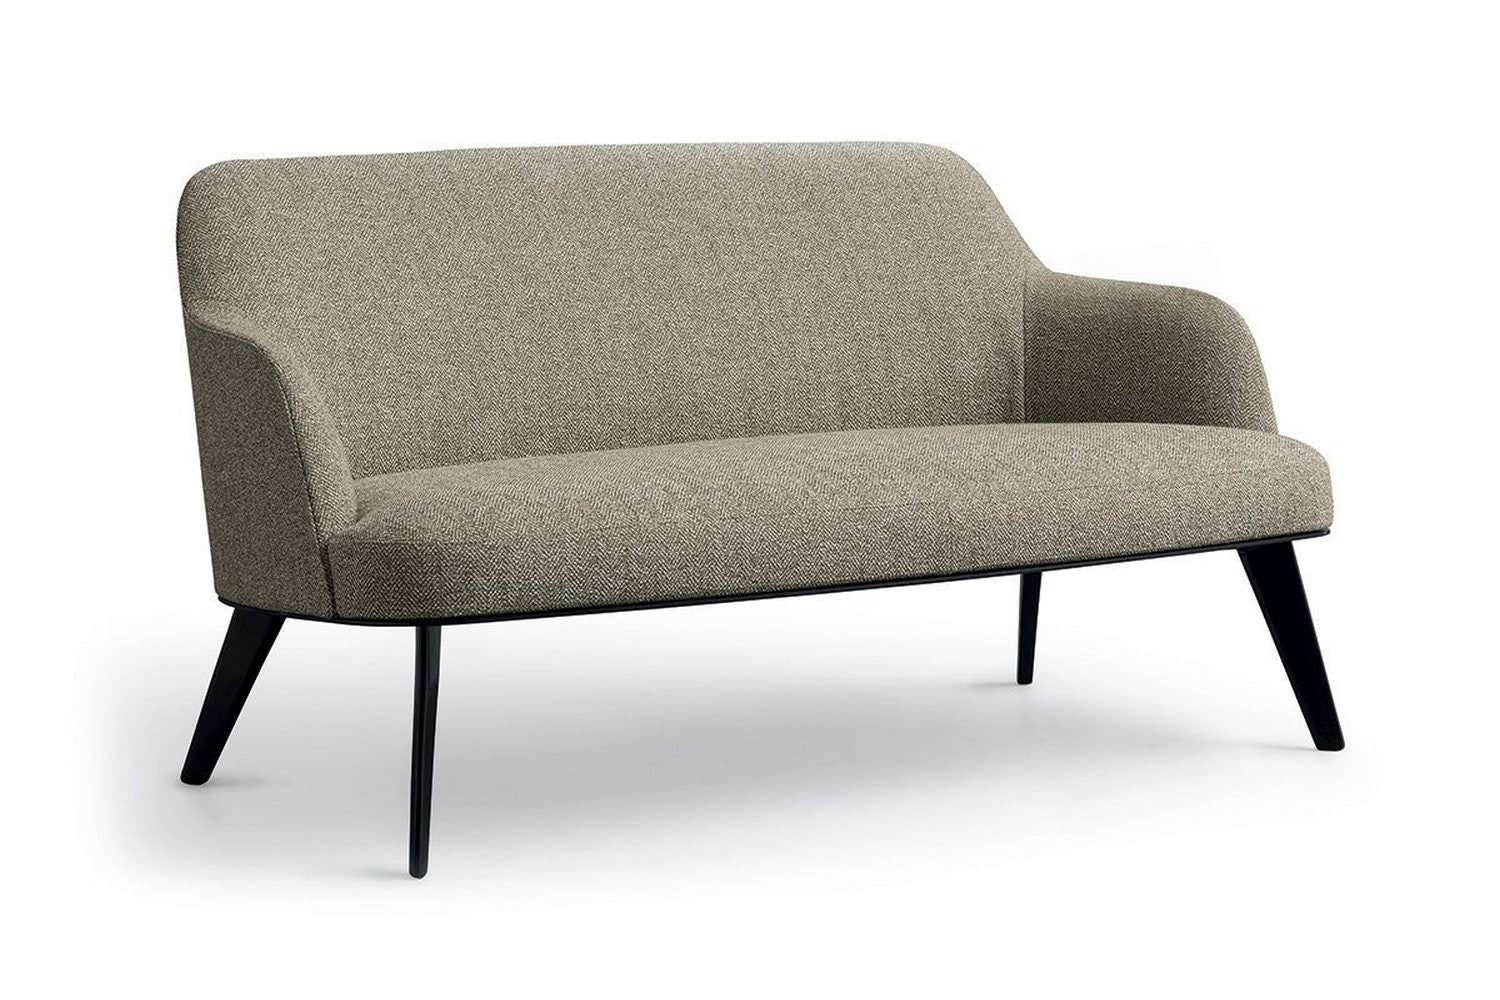 Jane Sofa by Emmanuel Gallina for Poliform